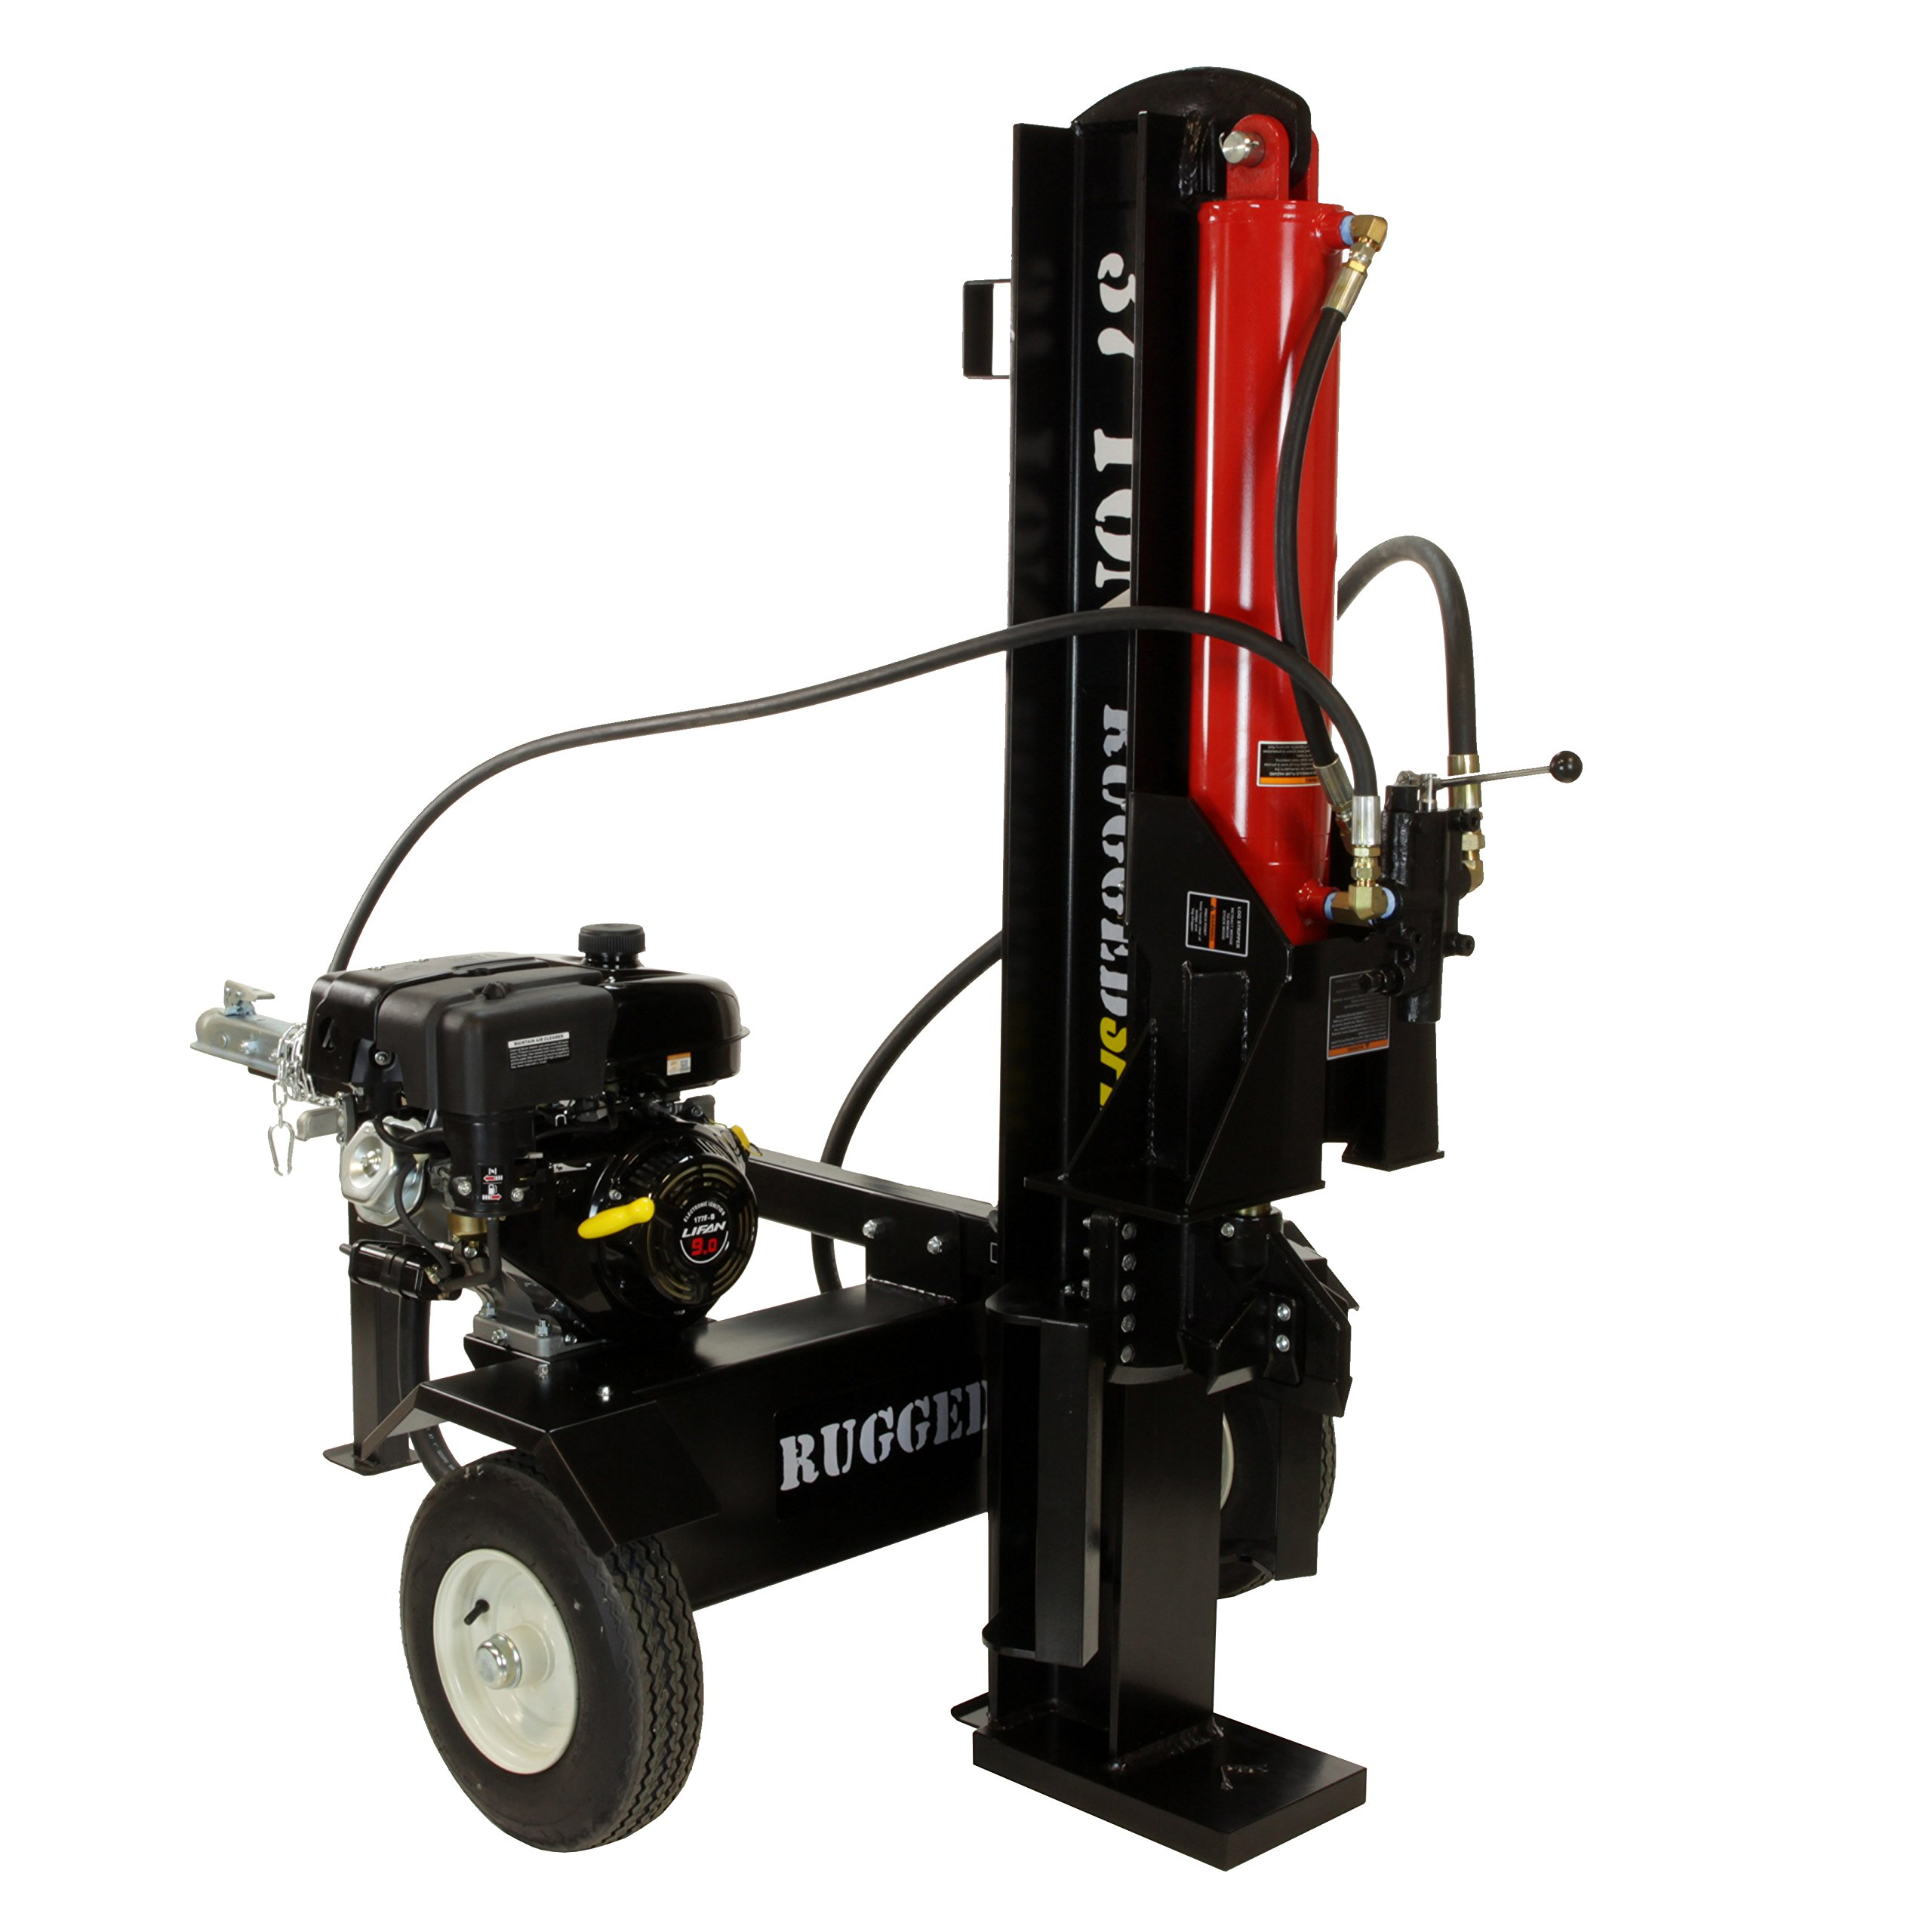 37-Ton Horizontal/Vertical Gas Log Splitter, 301CC Electric Start